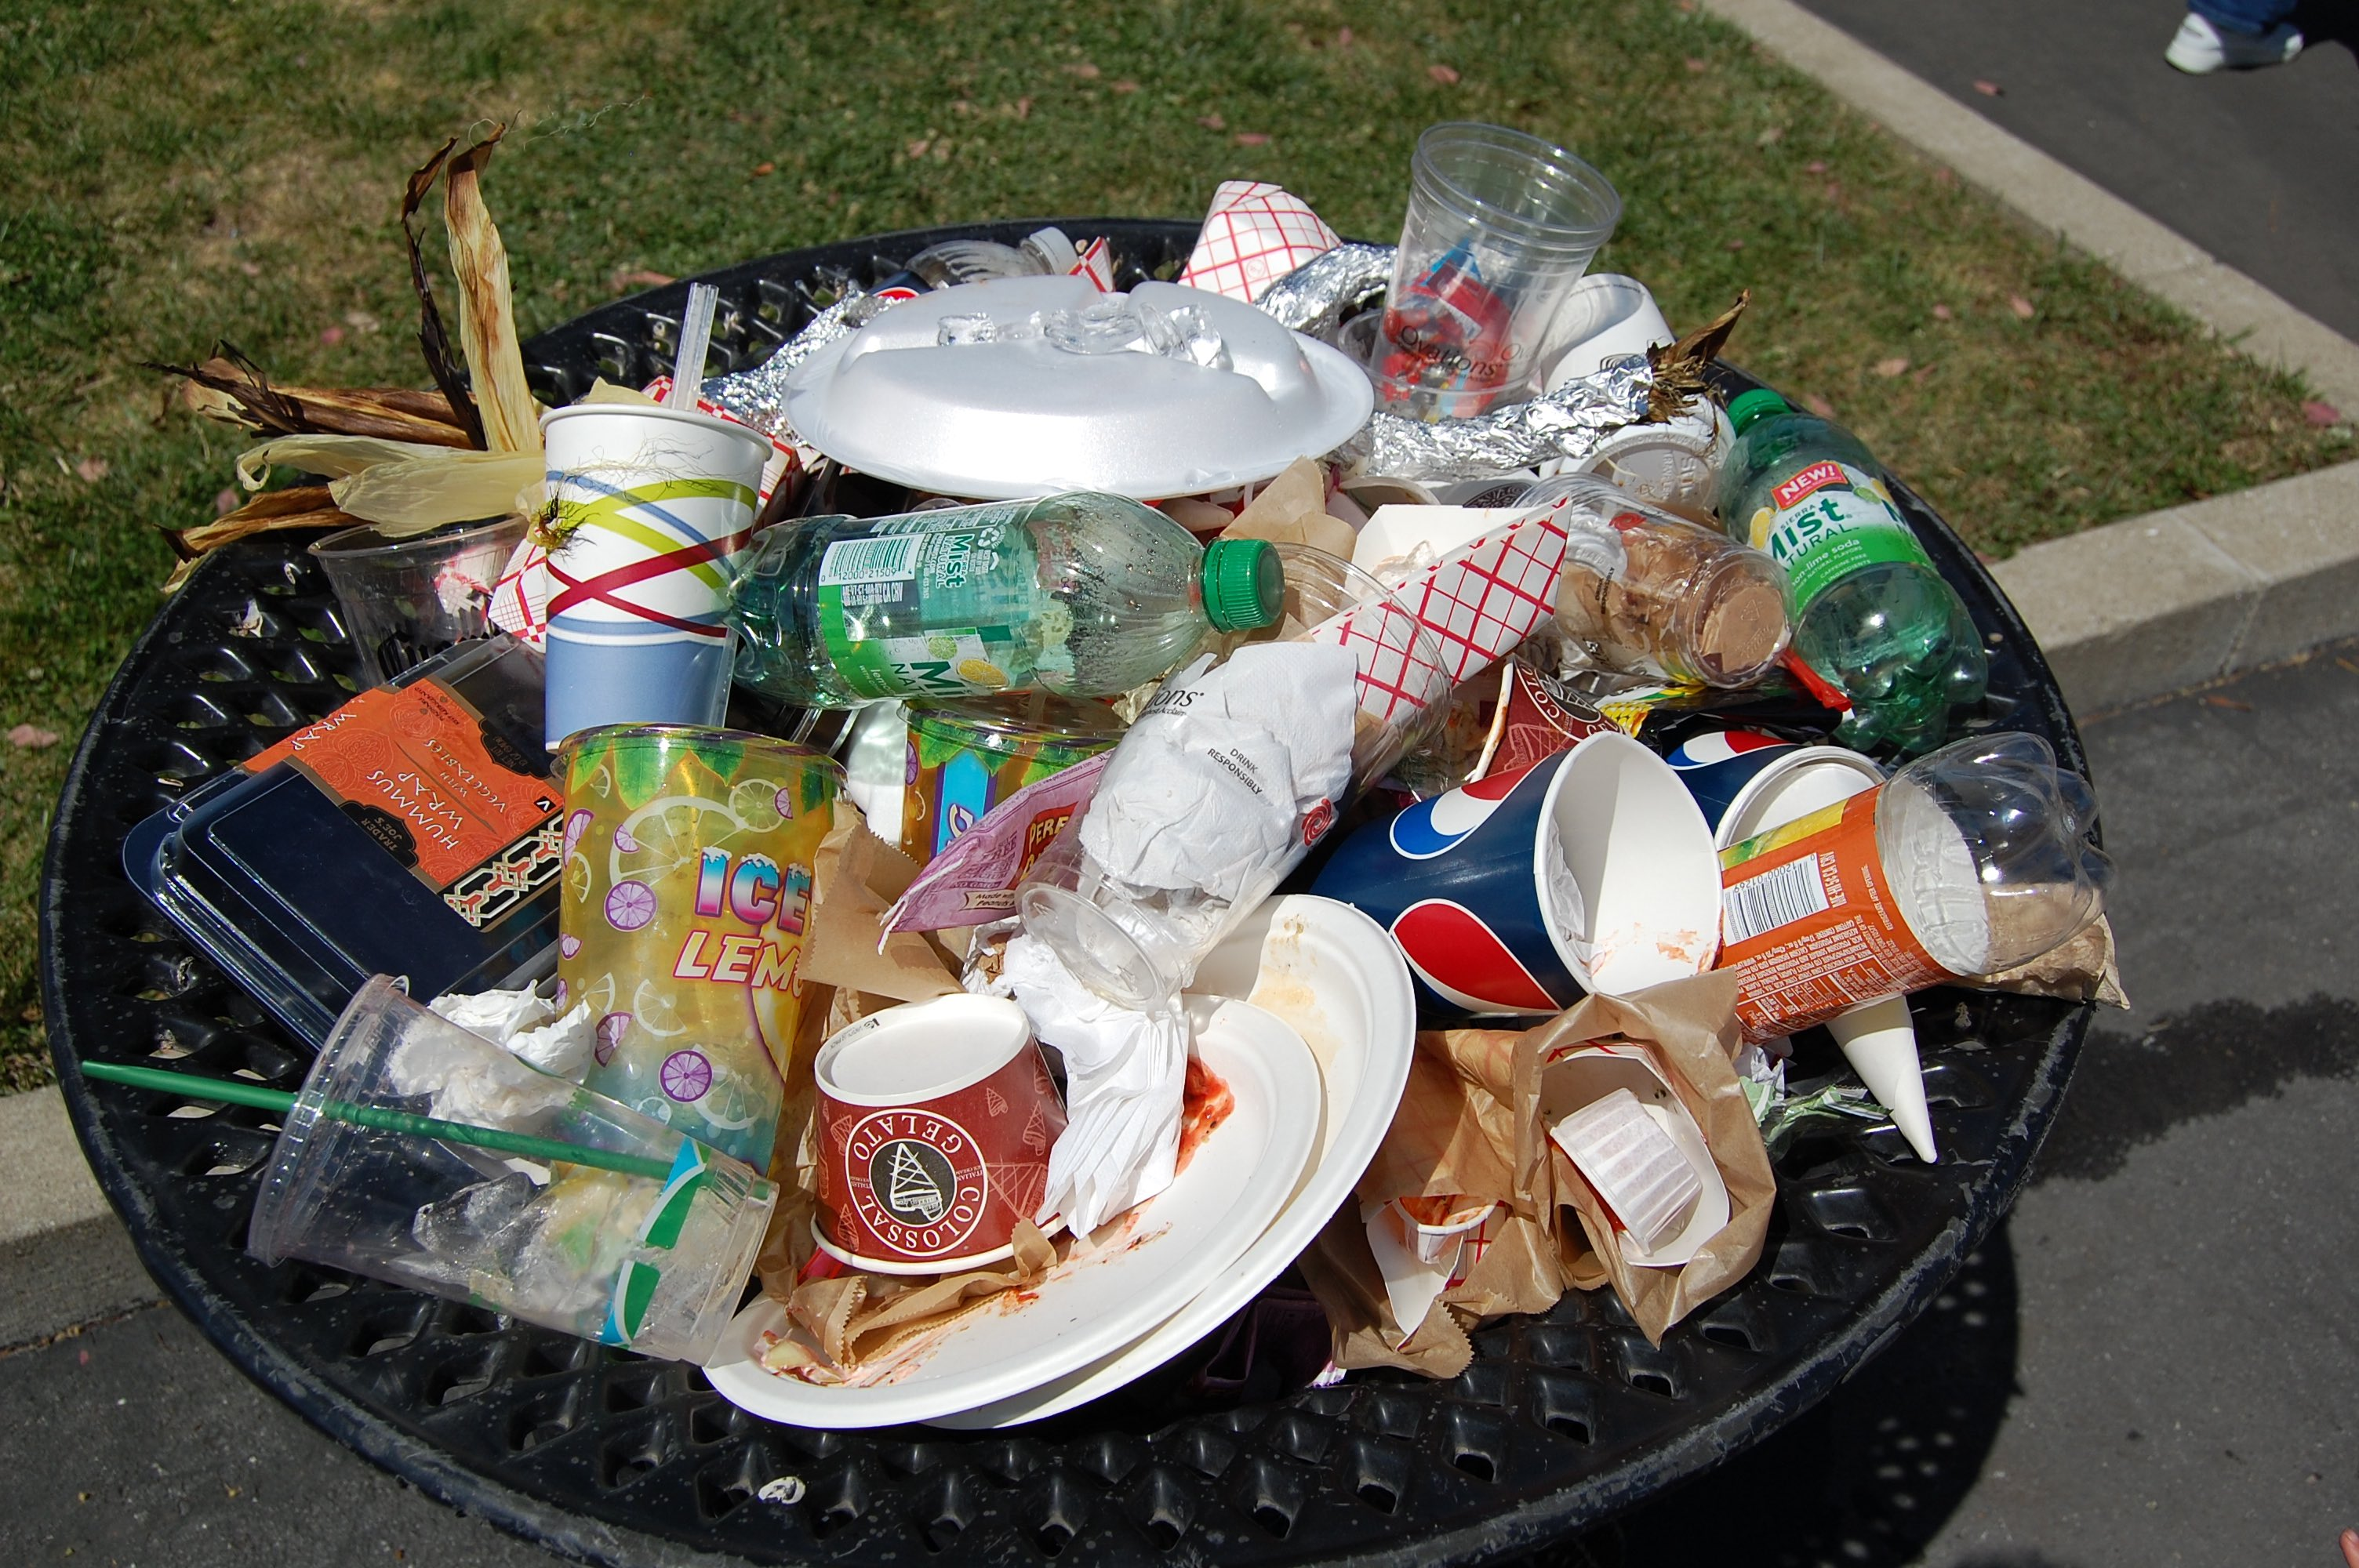 Single-use plastic items in a trash can. Credit: kevinkrejci/Flickr, CC BY 2.0